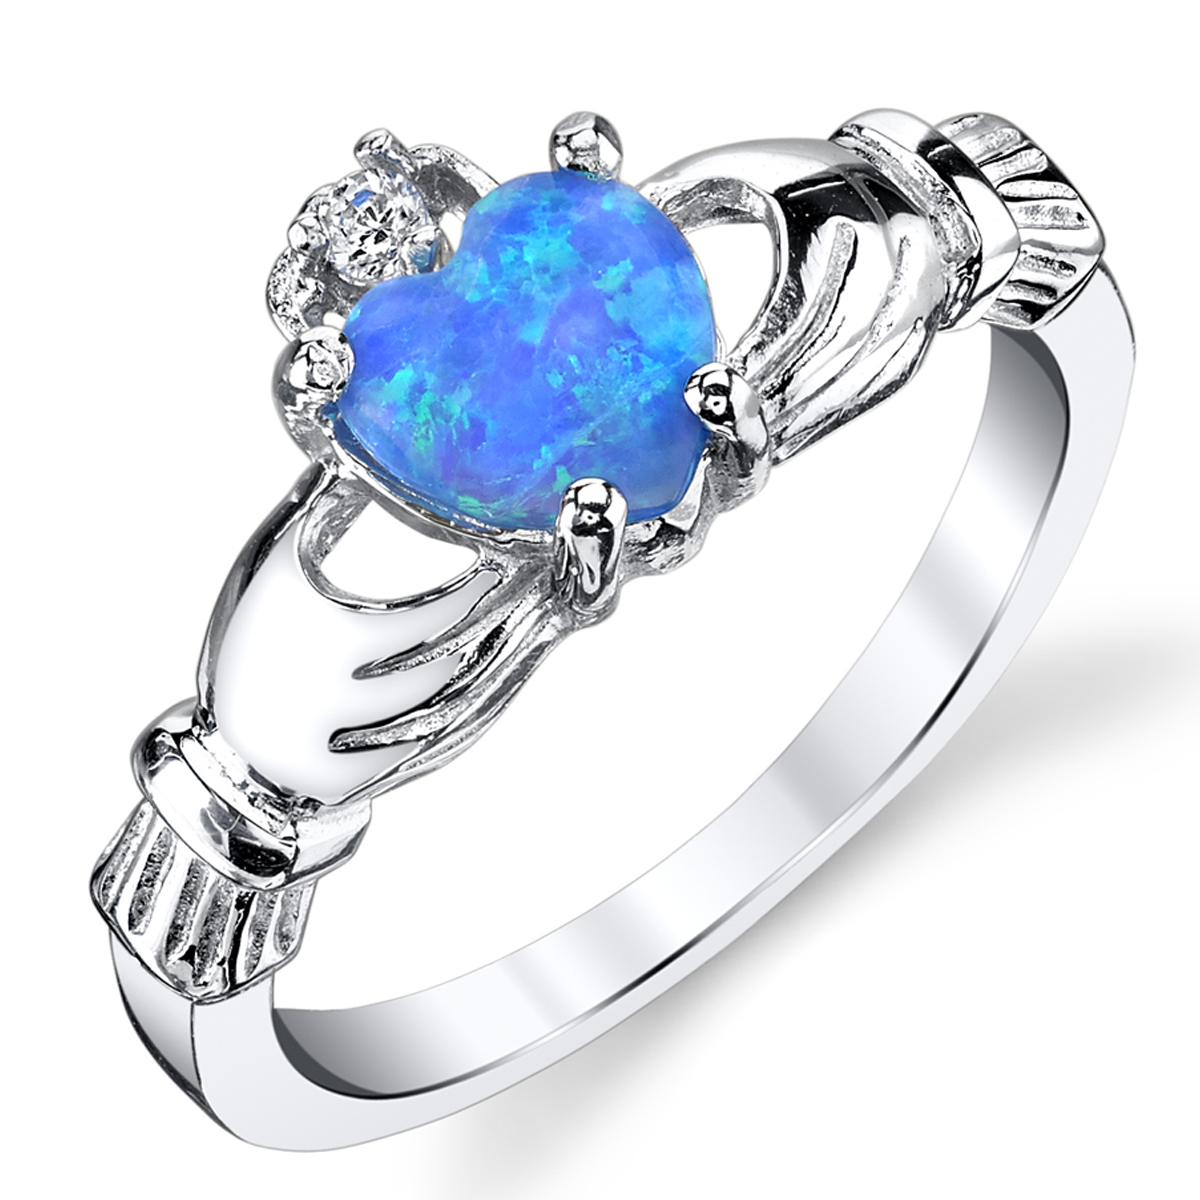 Sterling Silver 925 Irish Claddagh Friendship & Love Ring with Blue Simulated Opal Heart